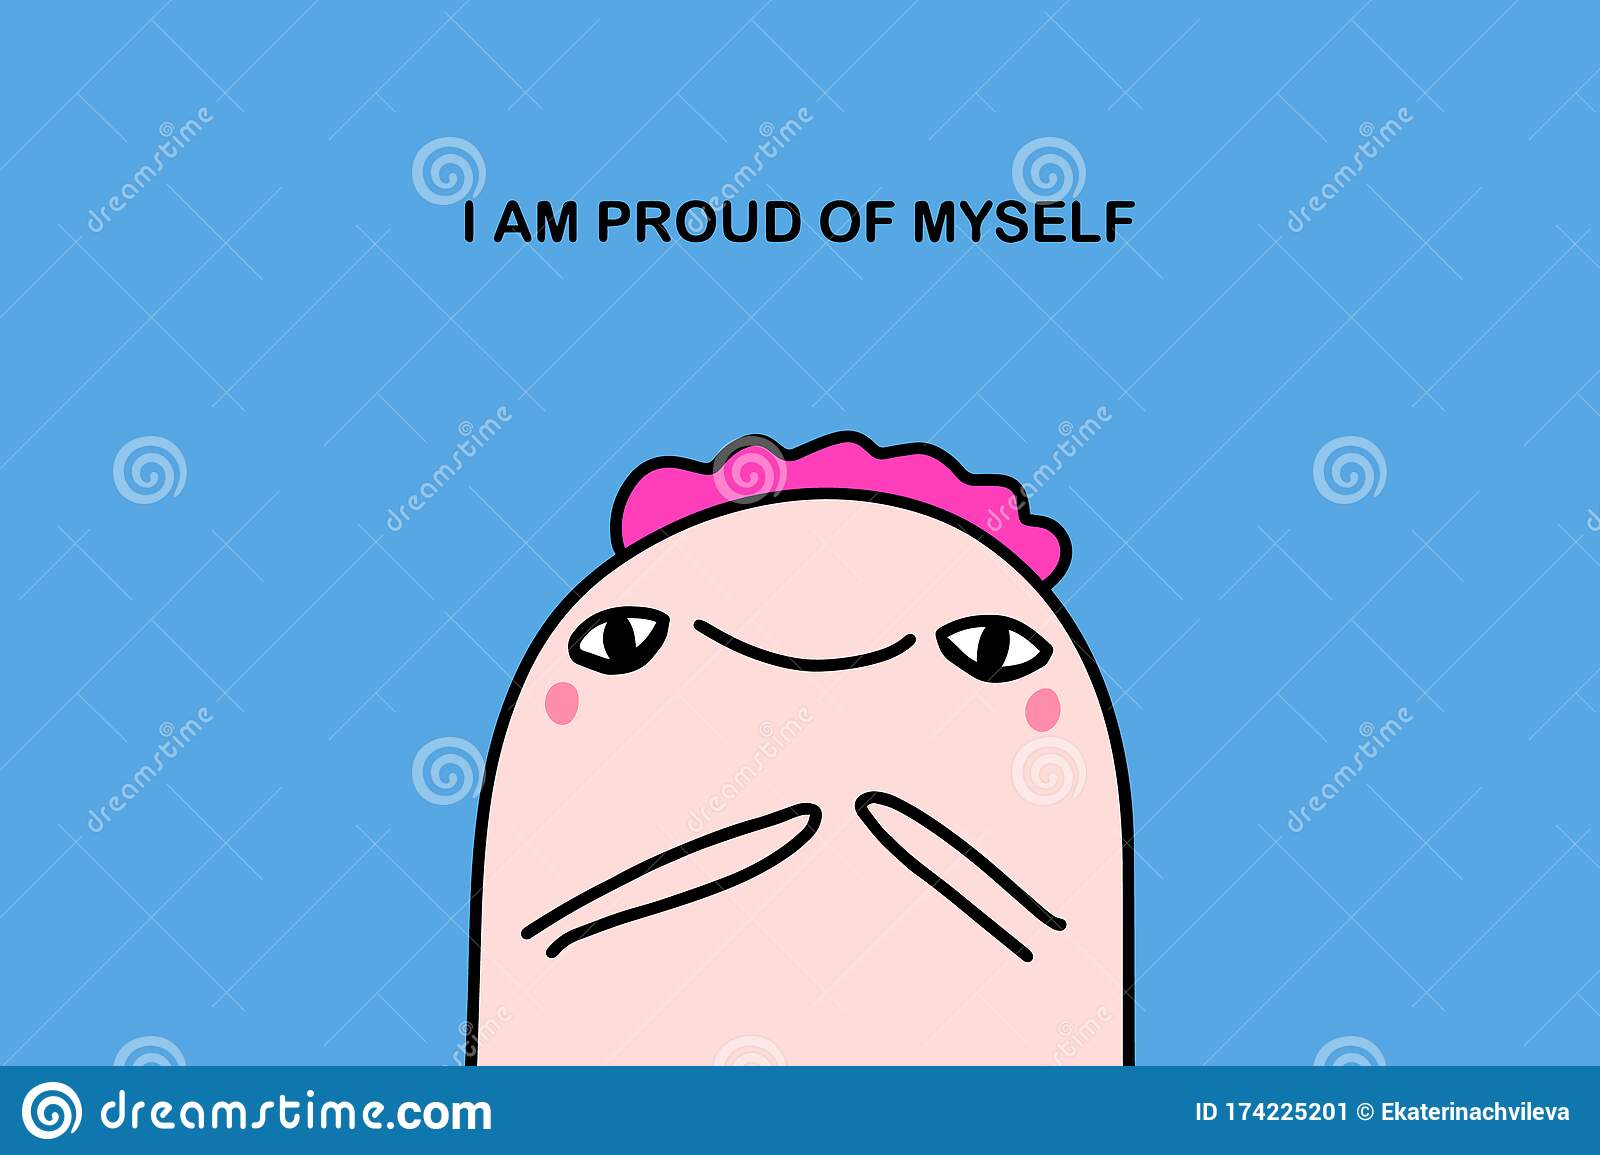 I Am Proud Of Myself Hand Drawn Vector Illustration In